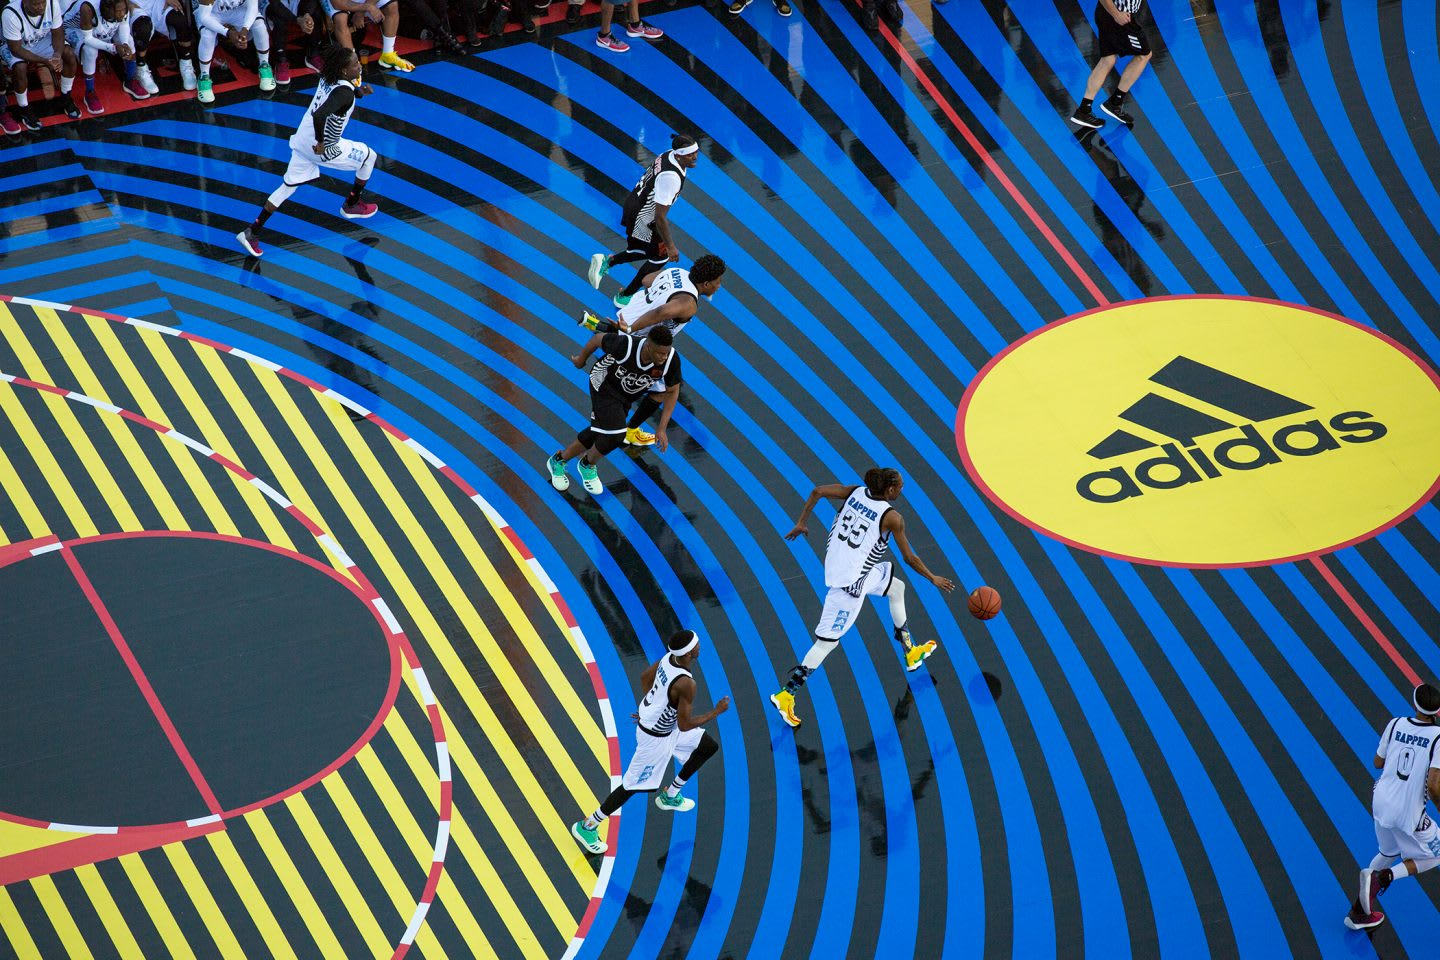 A colourful basketball outdoor court where two teams are competing. Basketball, team sports, team work, success, challenge, GamePlan A.